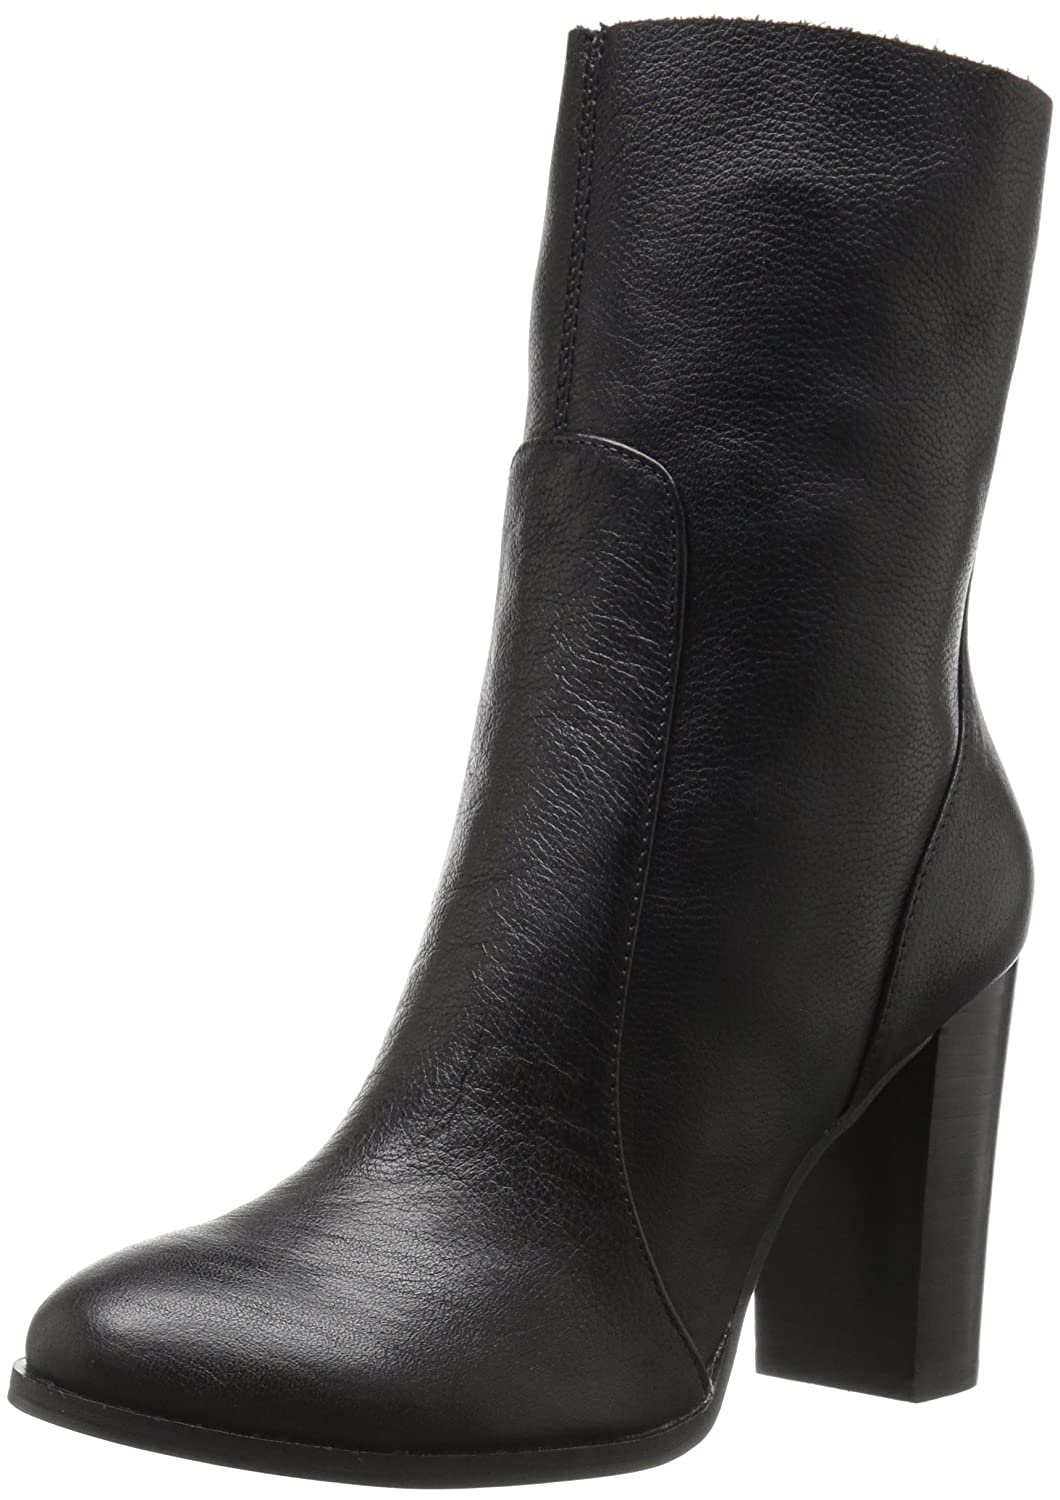 Chinese Laundry Women's Cool Kid Boot B019TOC3O8 8 B(M) US|Black Leather